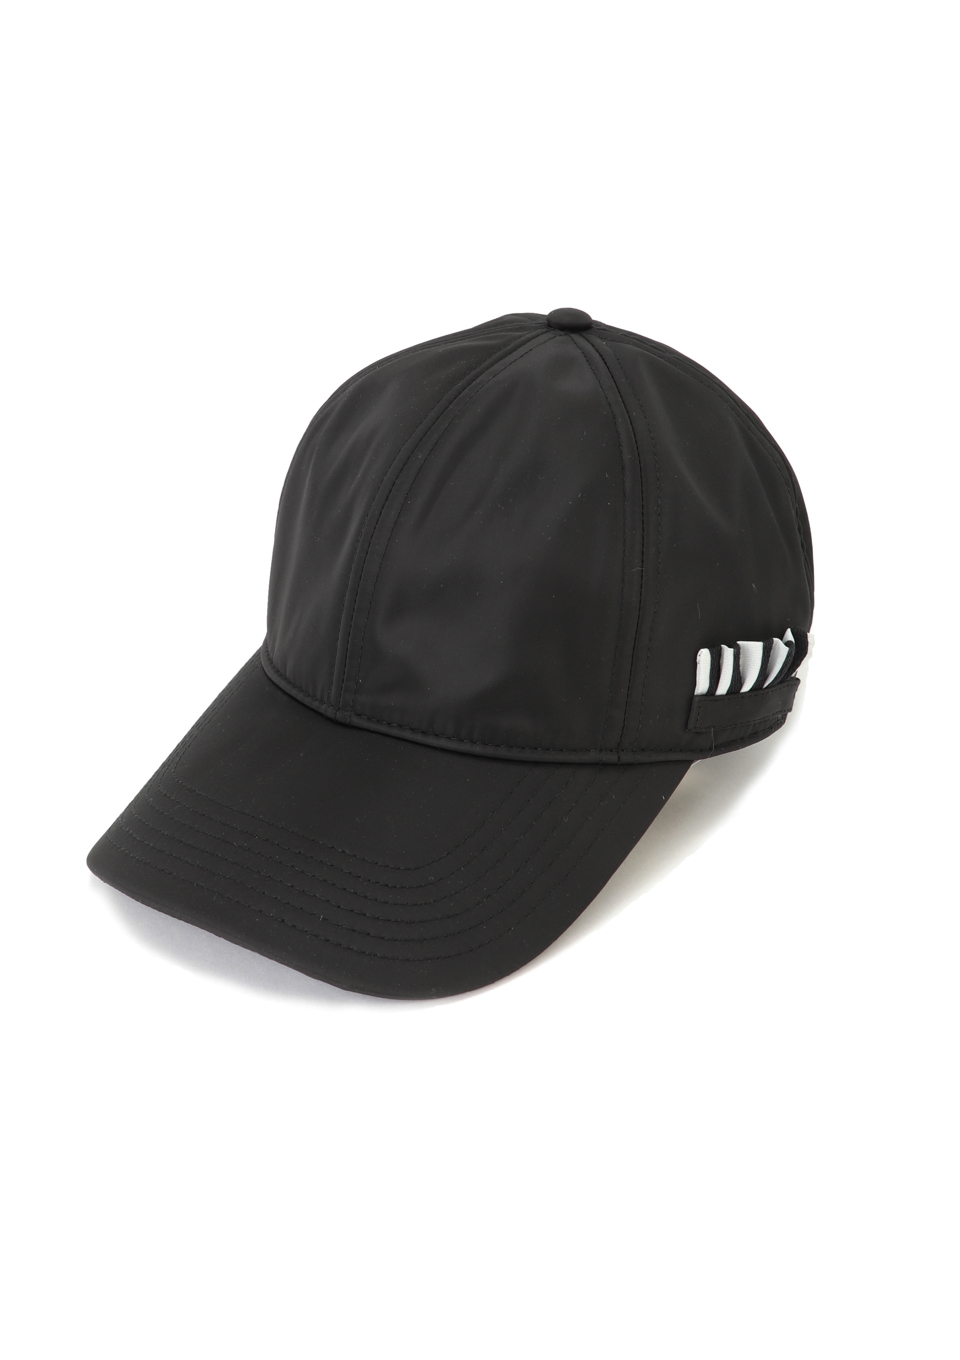 CITY POLLY CAP(F)